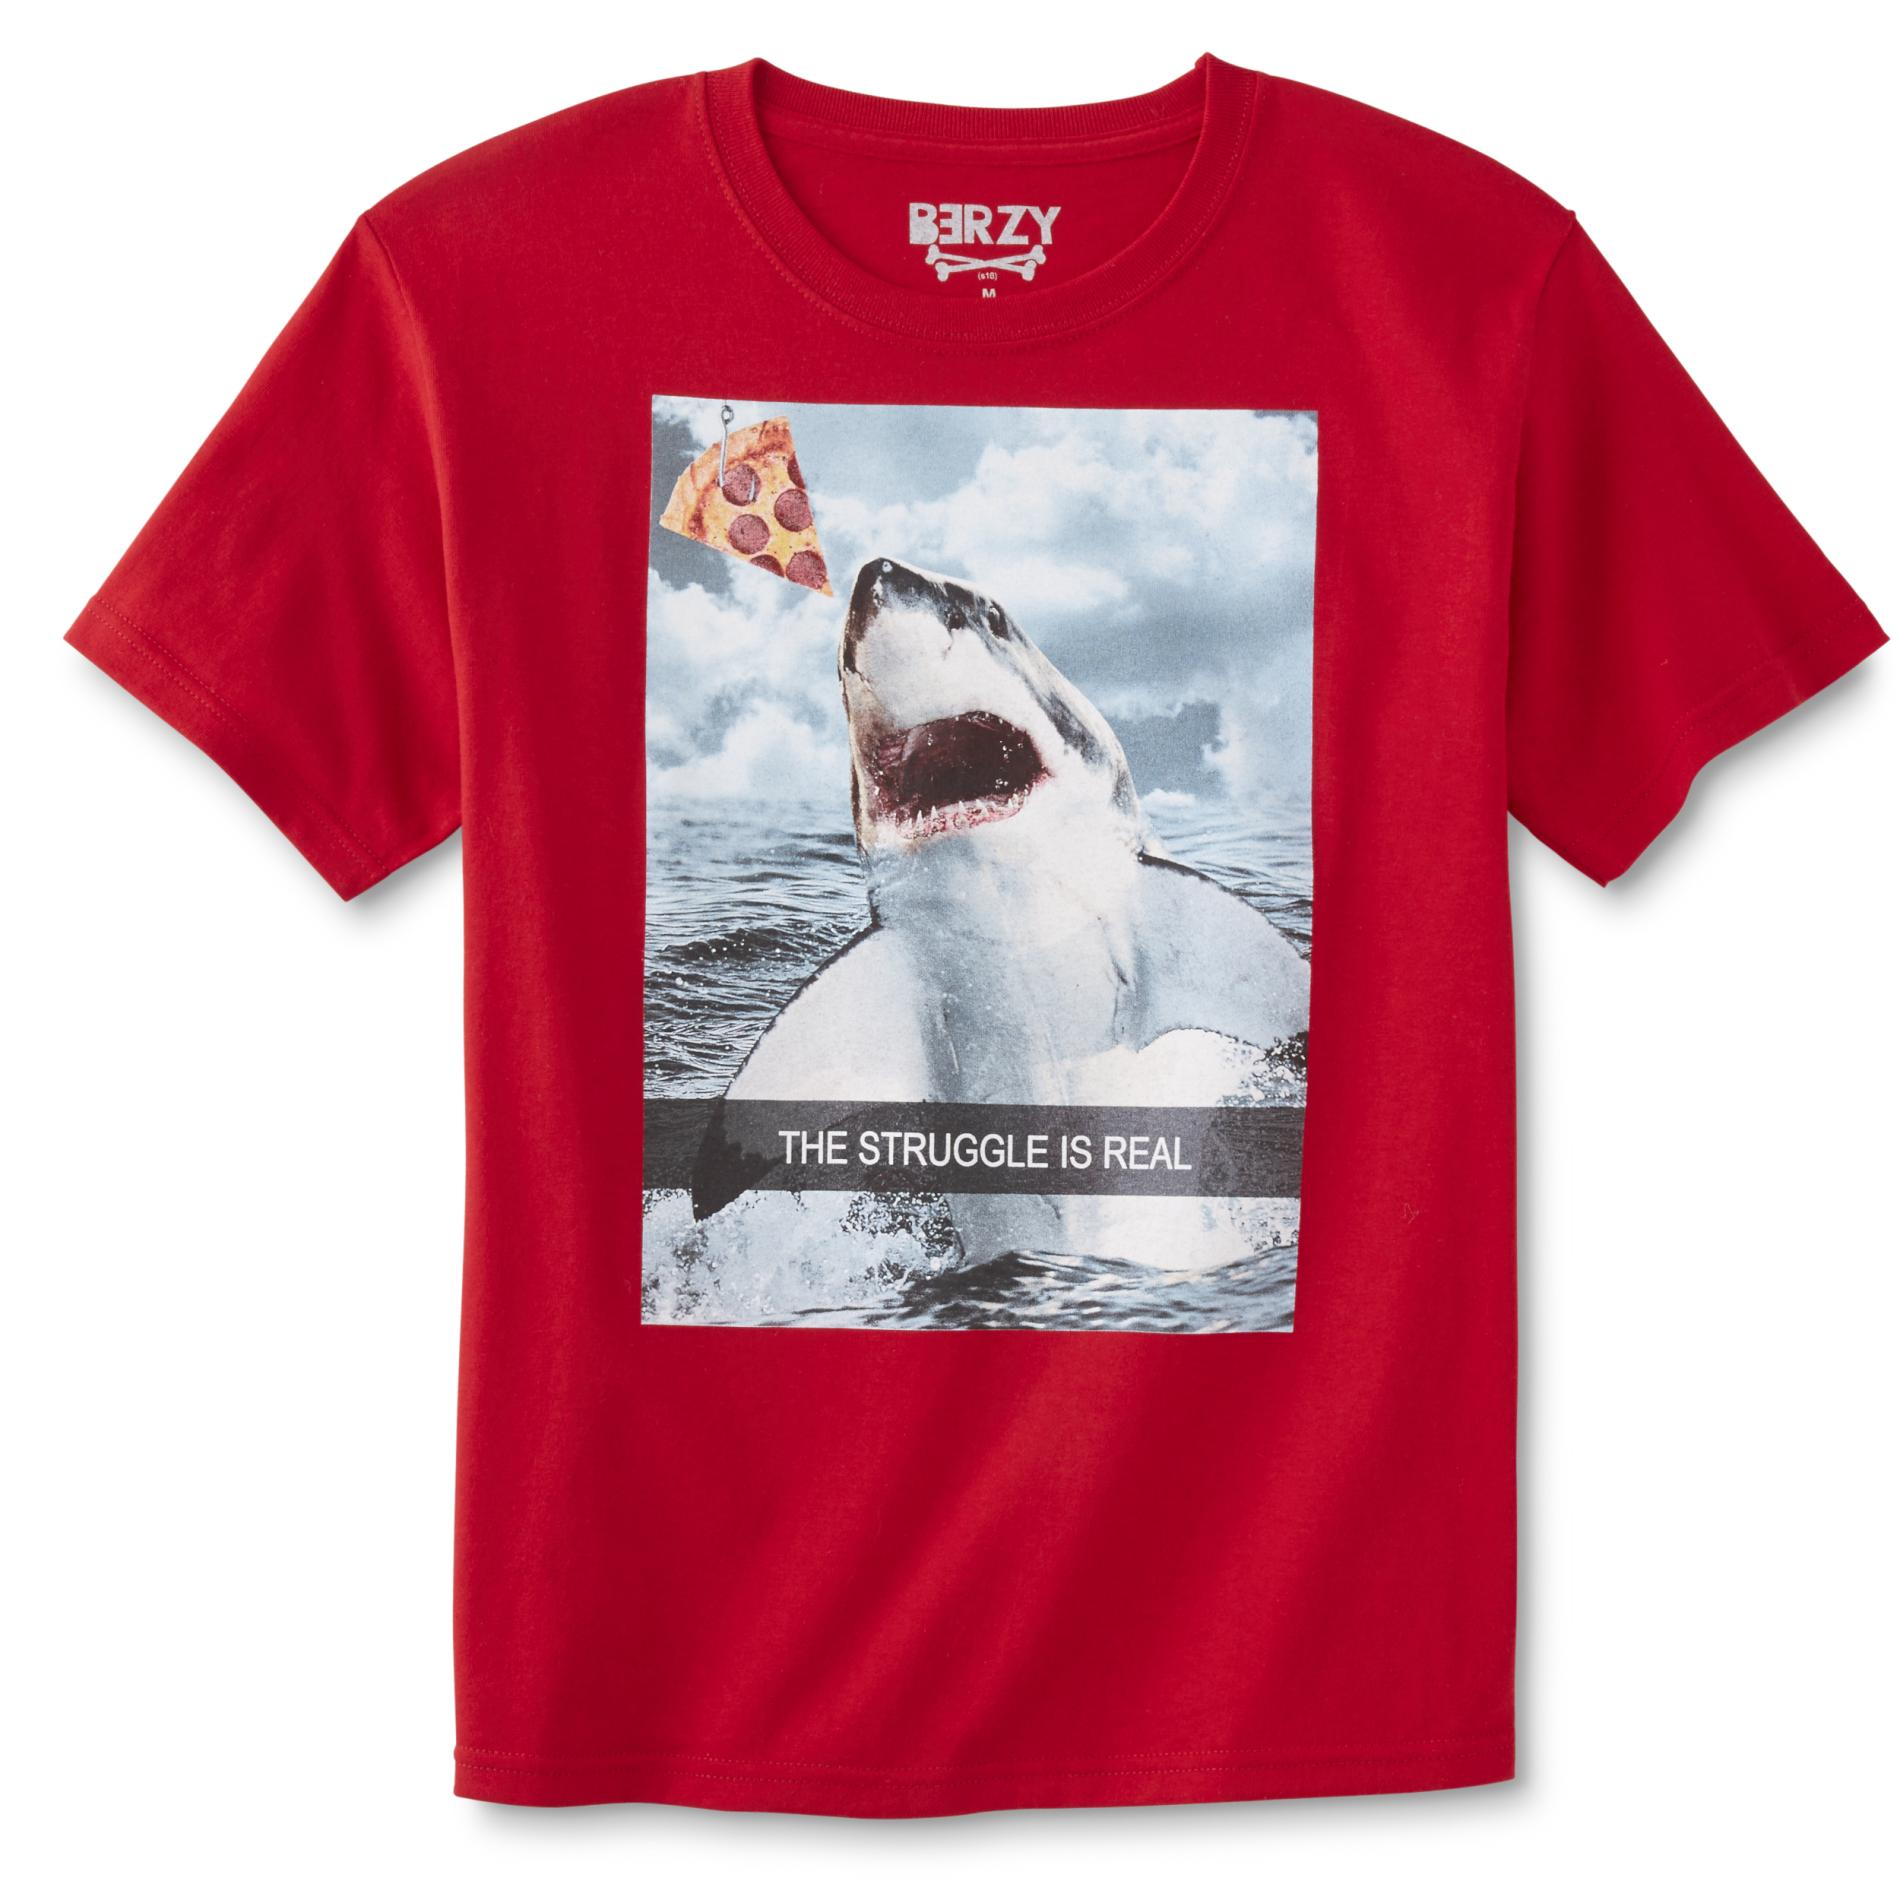 waterbury garment Boy's Graphic T-Shirt - The Struggle is Real, Size: Small, Red 049W007908385001